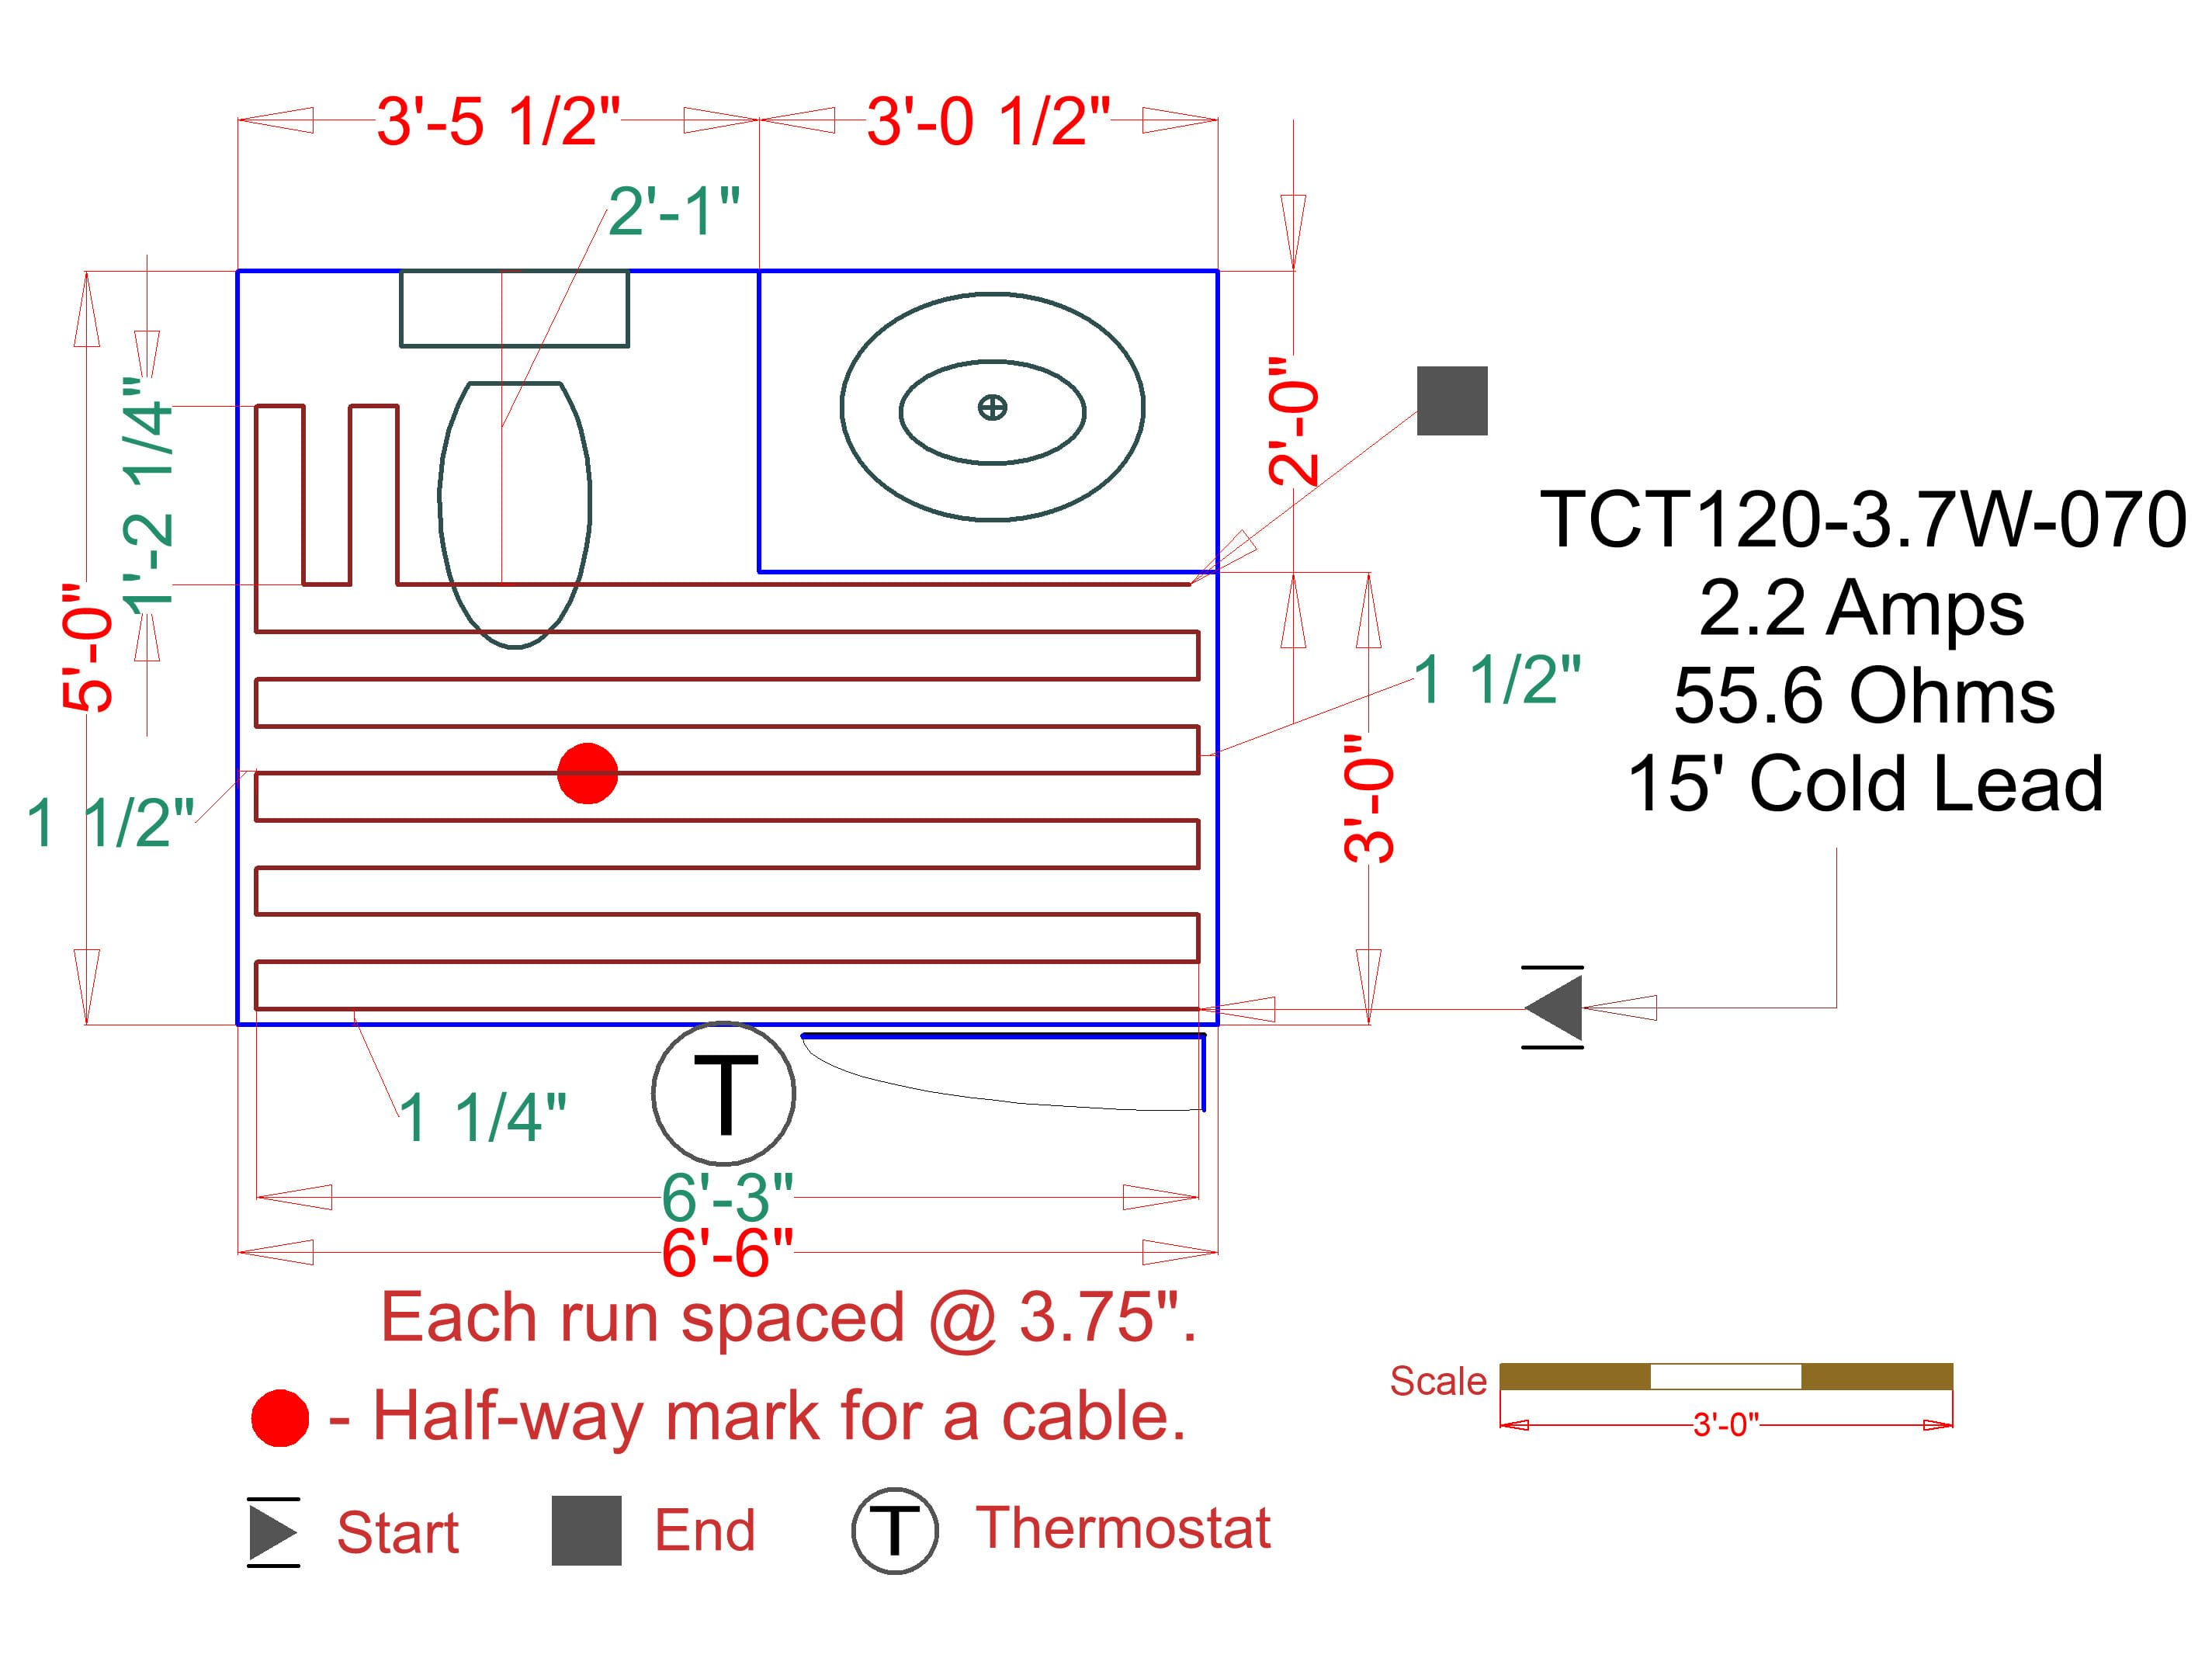 WarmlyYours TCT120-3.7W-150 N/A TempZone 150 Foot Long Radiant Floor on pinout diagrams, electronic circuit diagrams, internet of things diagrams, smart car diagrams, switch diagrams, electrical diagrams, series and parallel circuits diagrams, honda motorcycle repair diagrams, friendship bracelet diagrams, transformer diagrams, lighting diagrams, engine diagrams, led circuit diagrams, sincgars radio configurations diagrams, hvac diagrams, motor diagrams, troubleshooting diagrams, gmc fuse box diagrams, snatch block diagrams, battery diagrams,